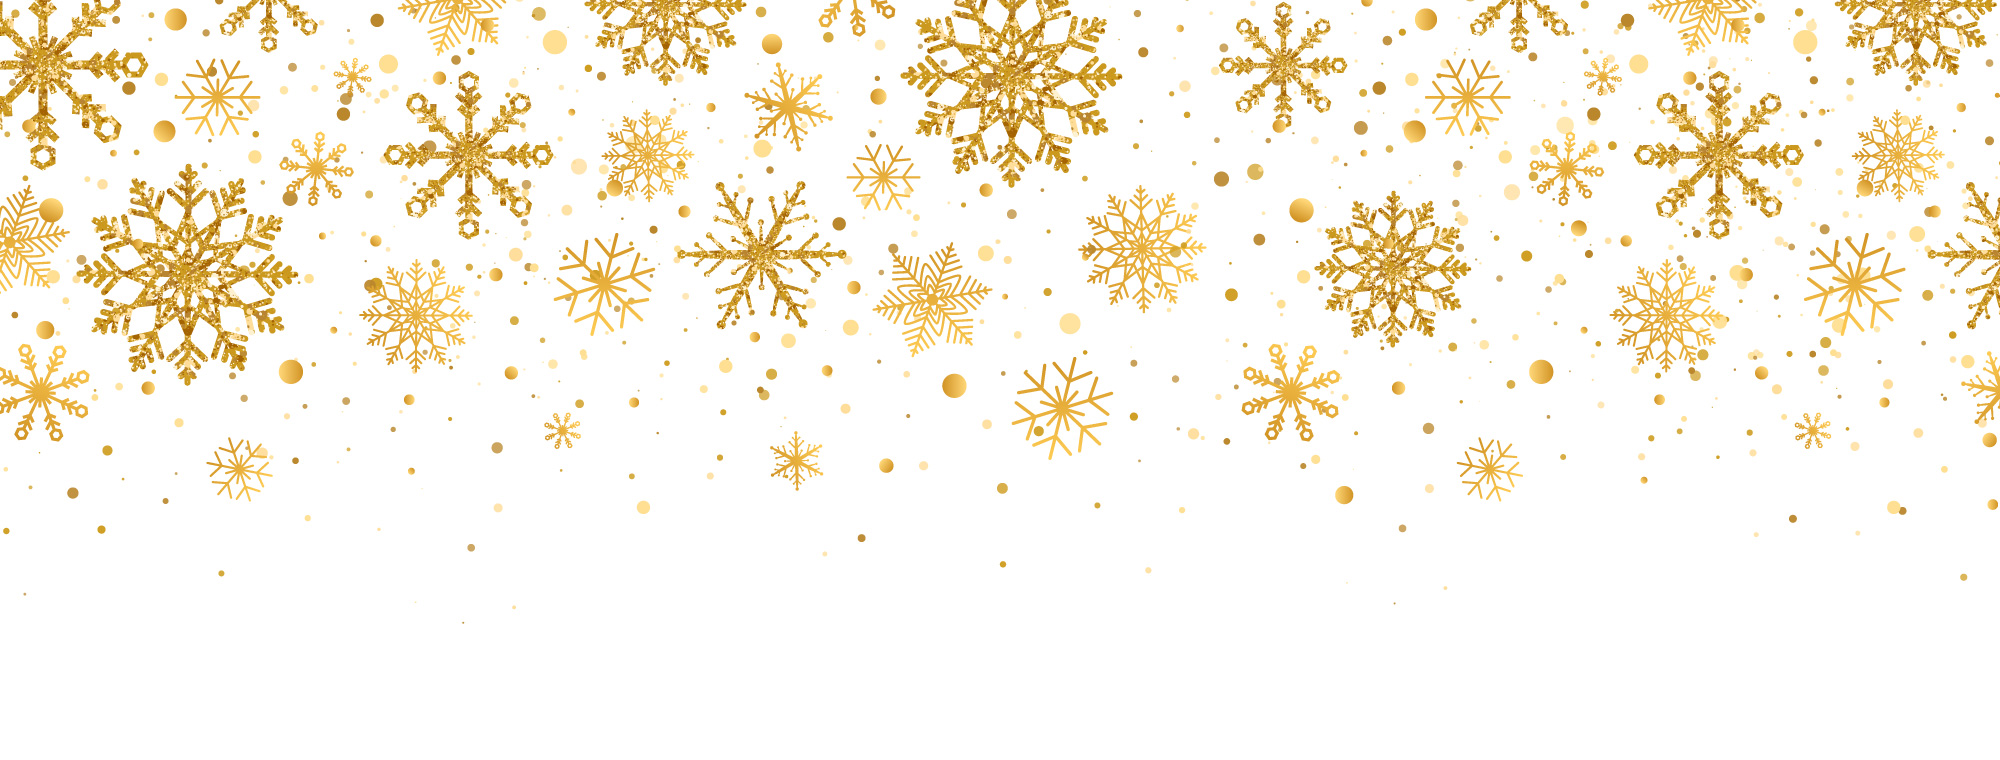 Gold-Snowflakes-Background